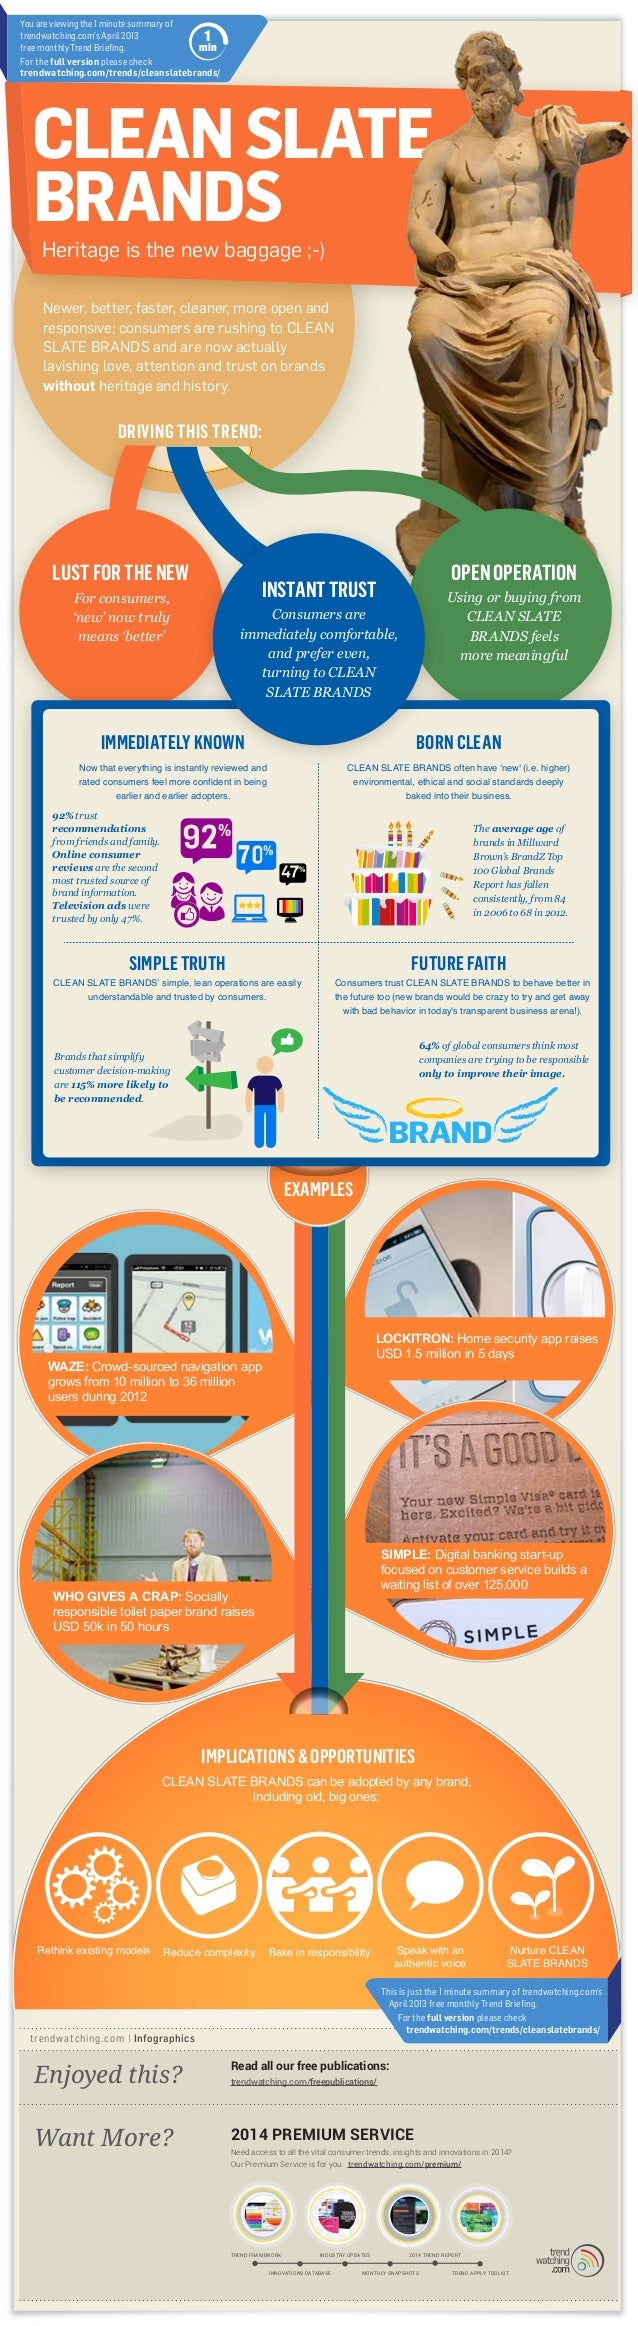 trendwatching.com's infographic CLEAN SLATE BRANDS